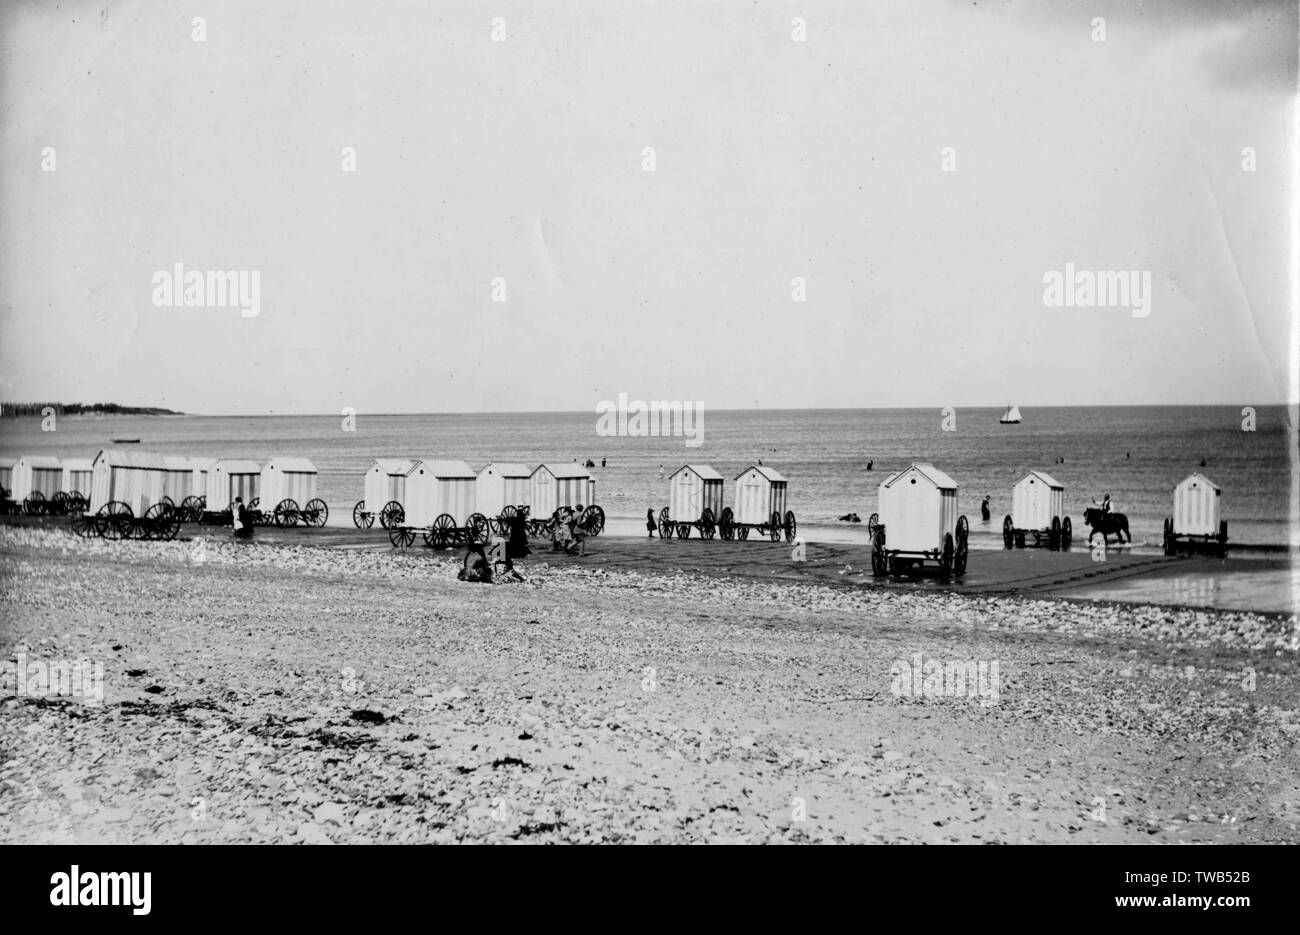 Bathing huts on the beach at Colwyn Bay, North Wales.      Date: circa 1889 Stock Photo